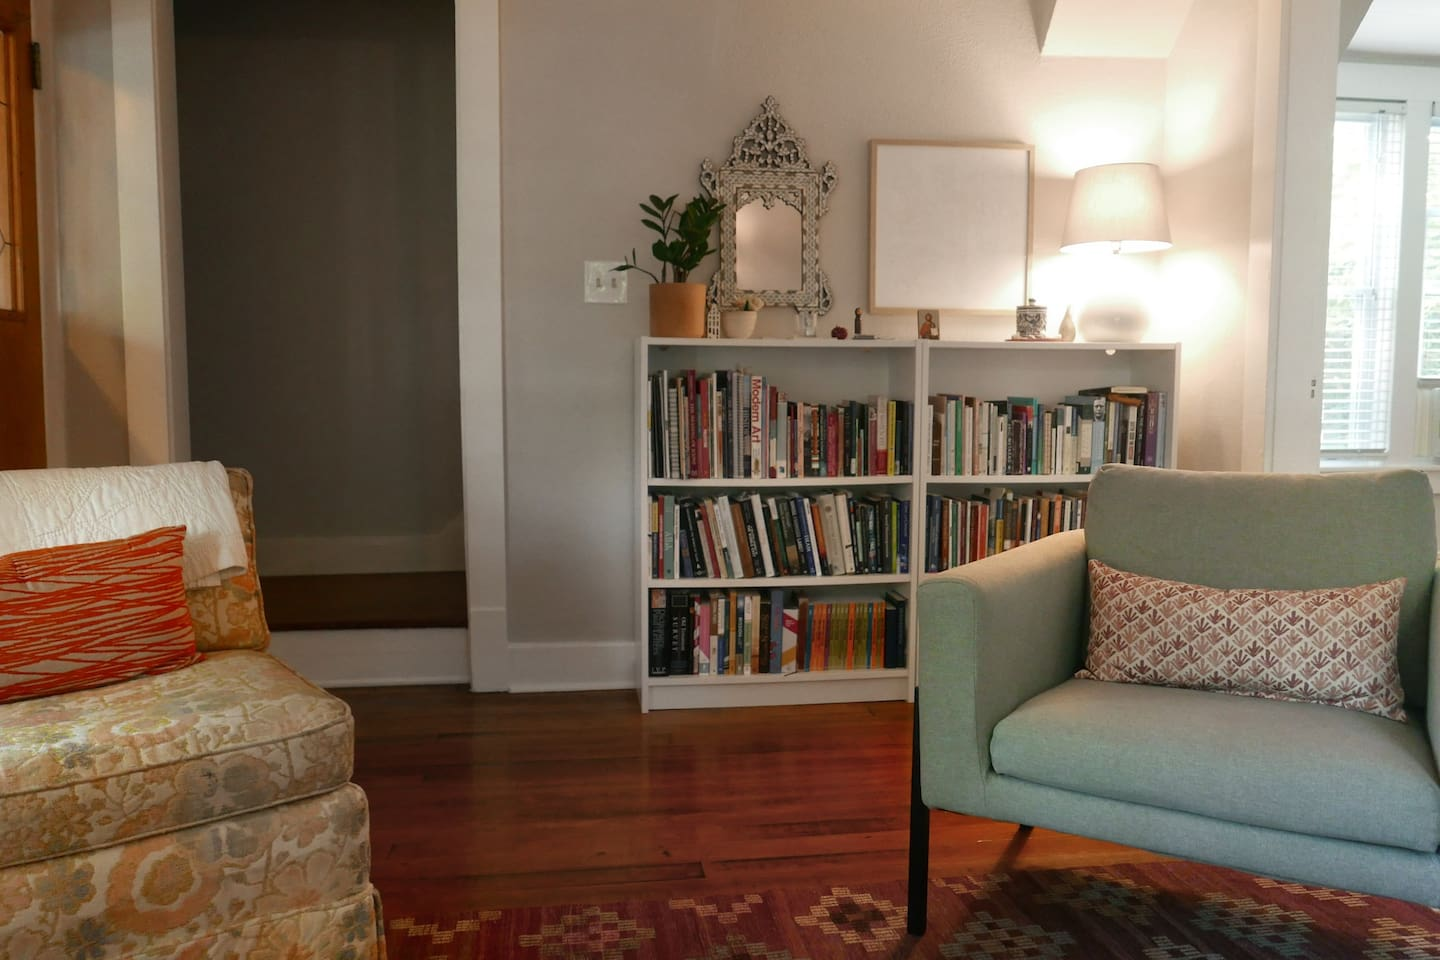 Living room: lots of books to read